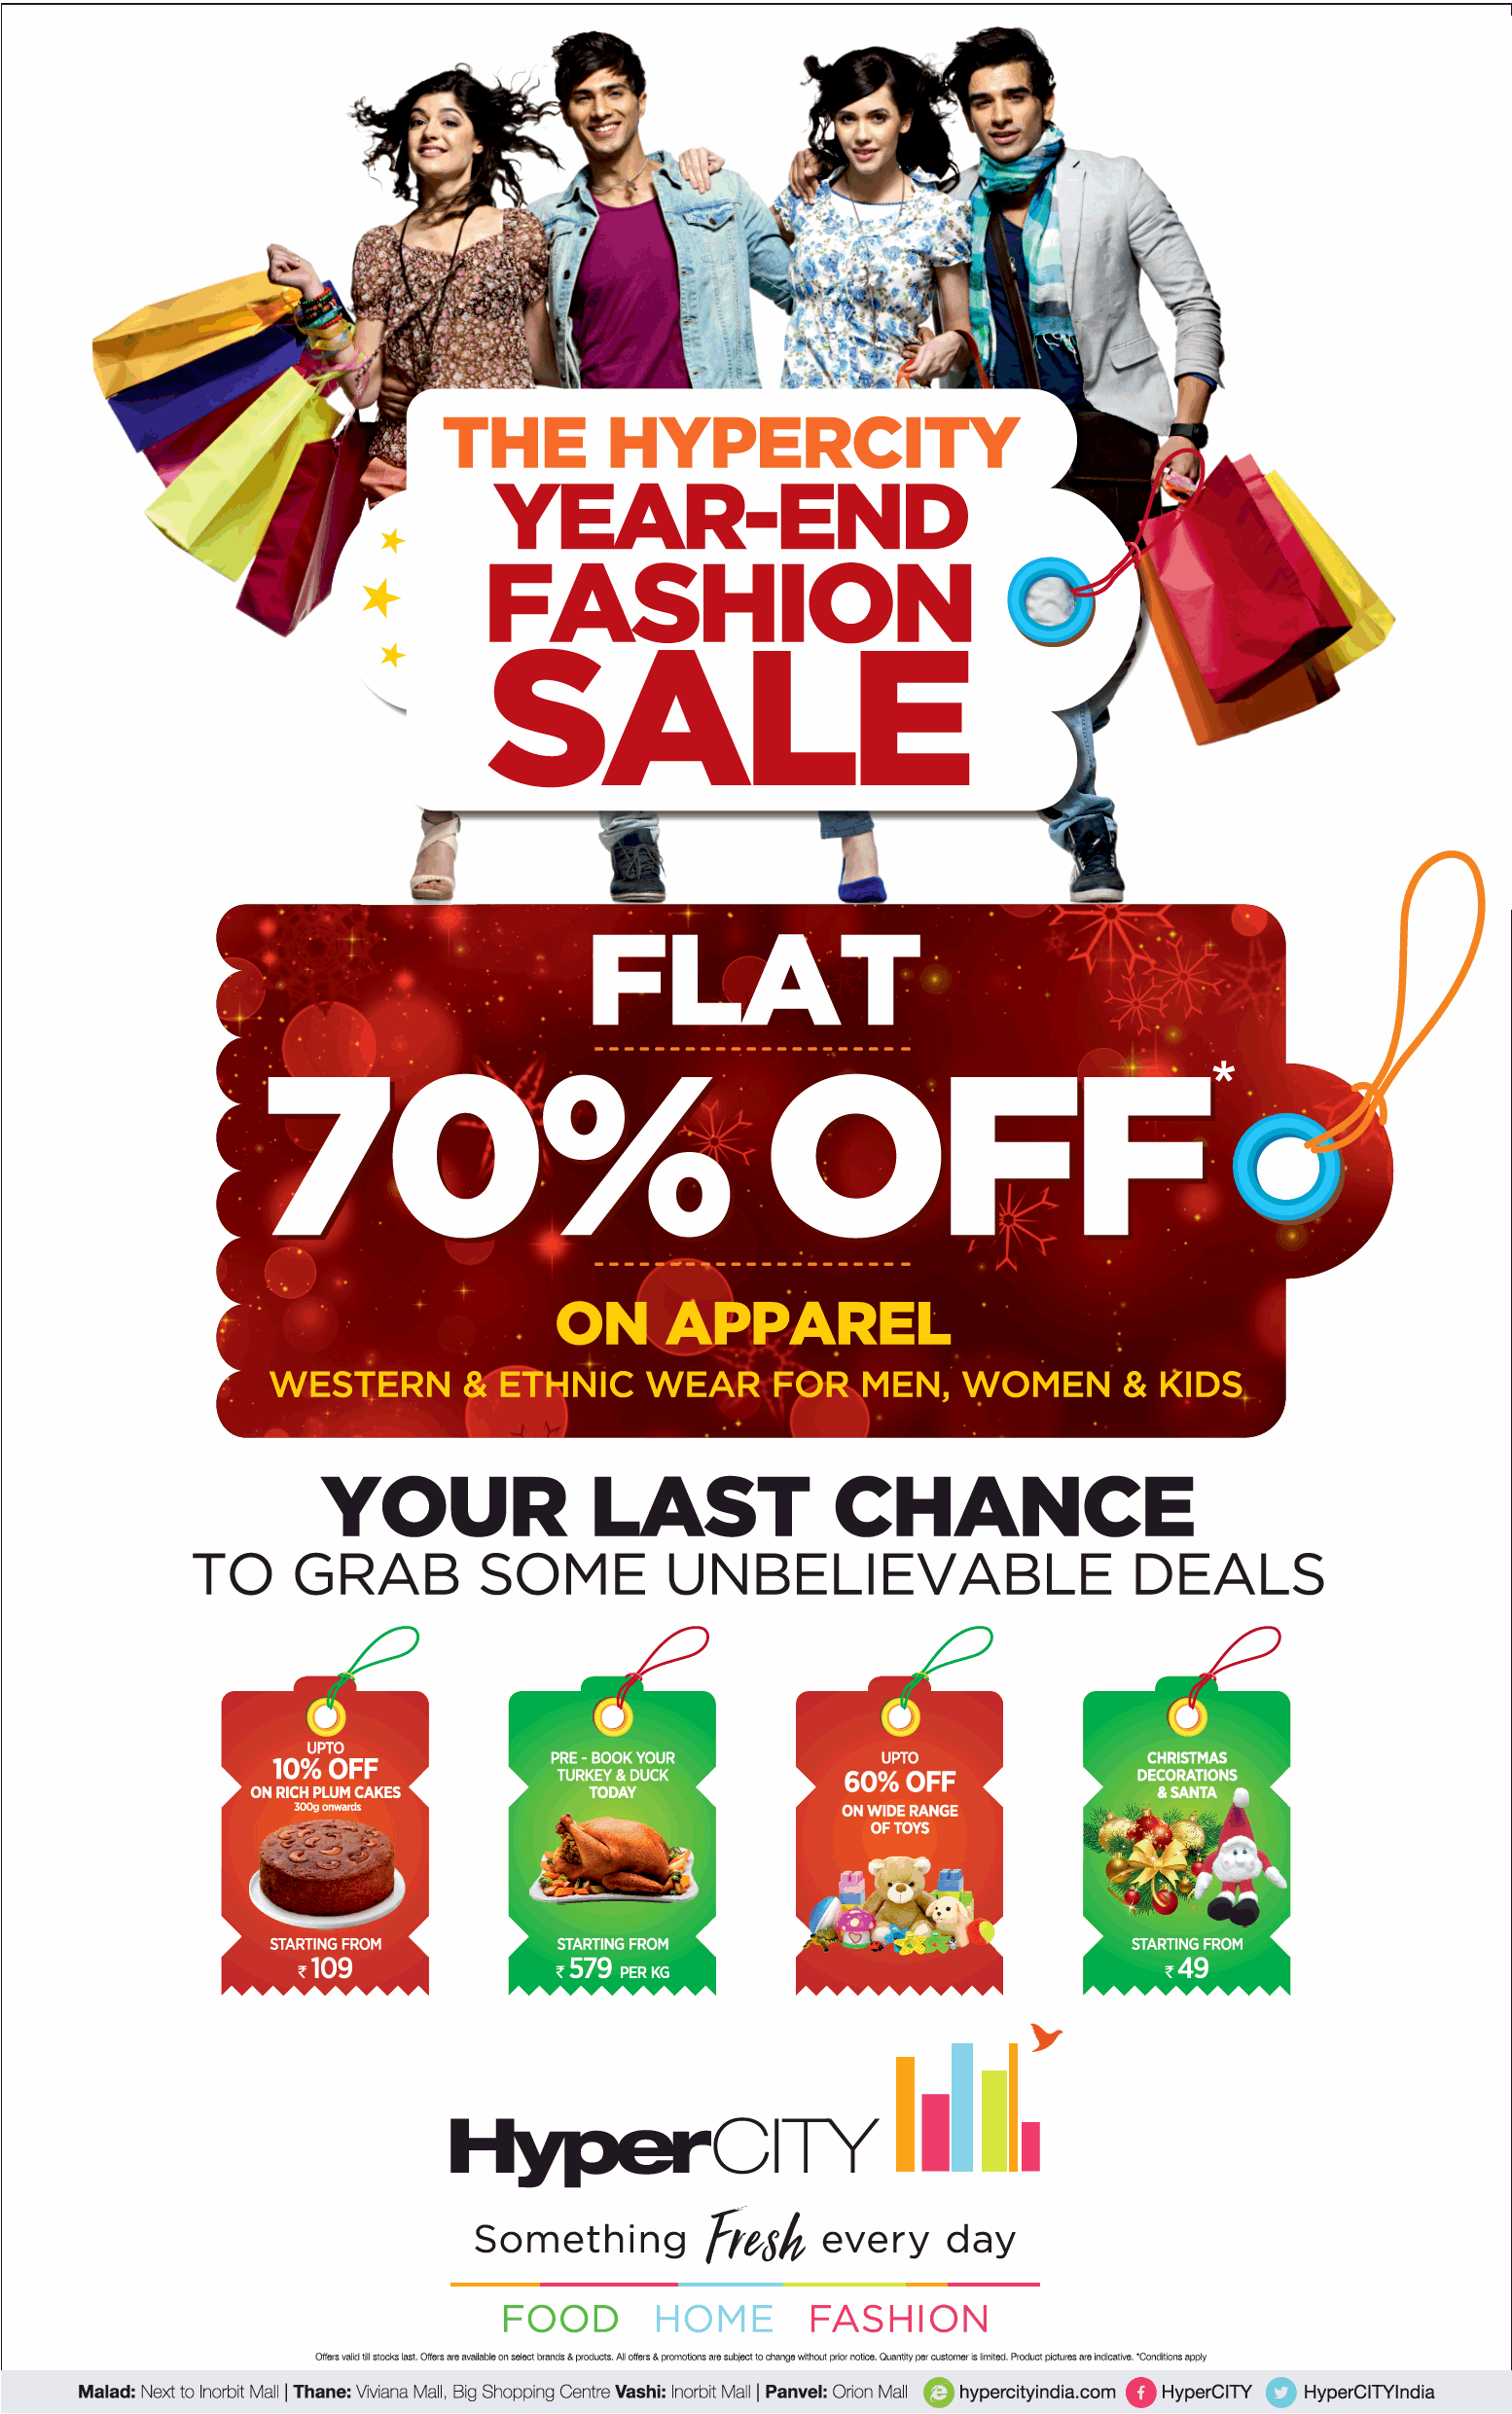 The hypercity year end fashion sale flat 70 off ad for Furniture year end sale 2017